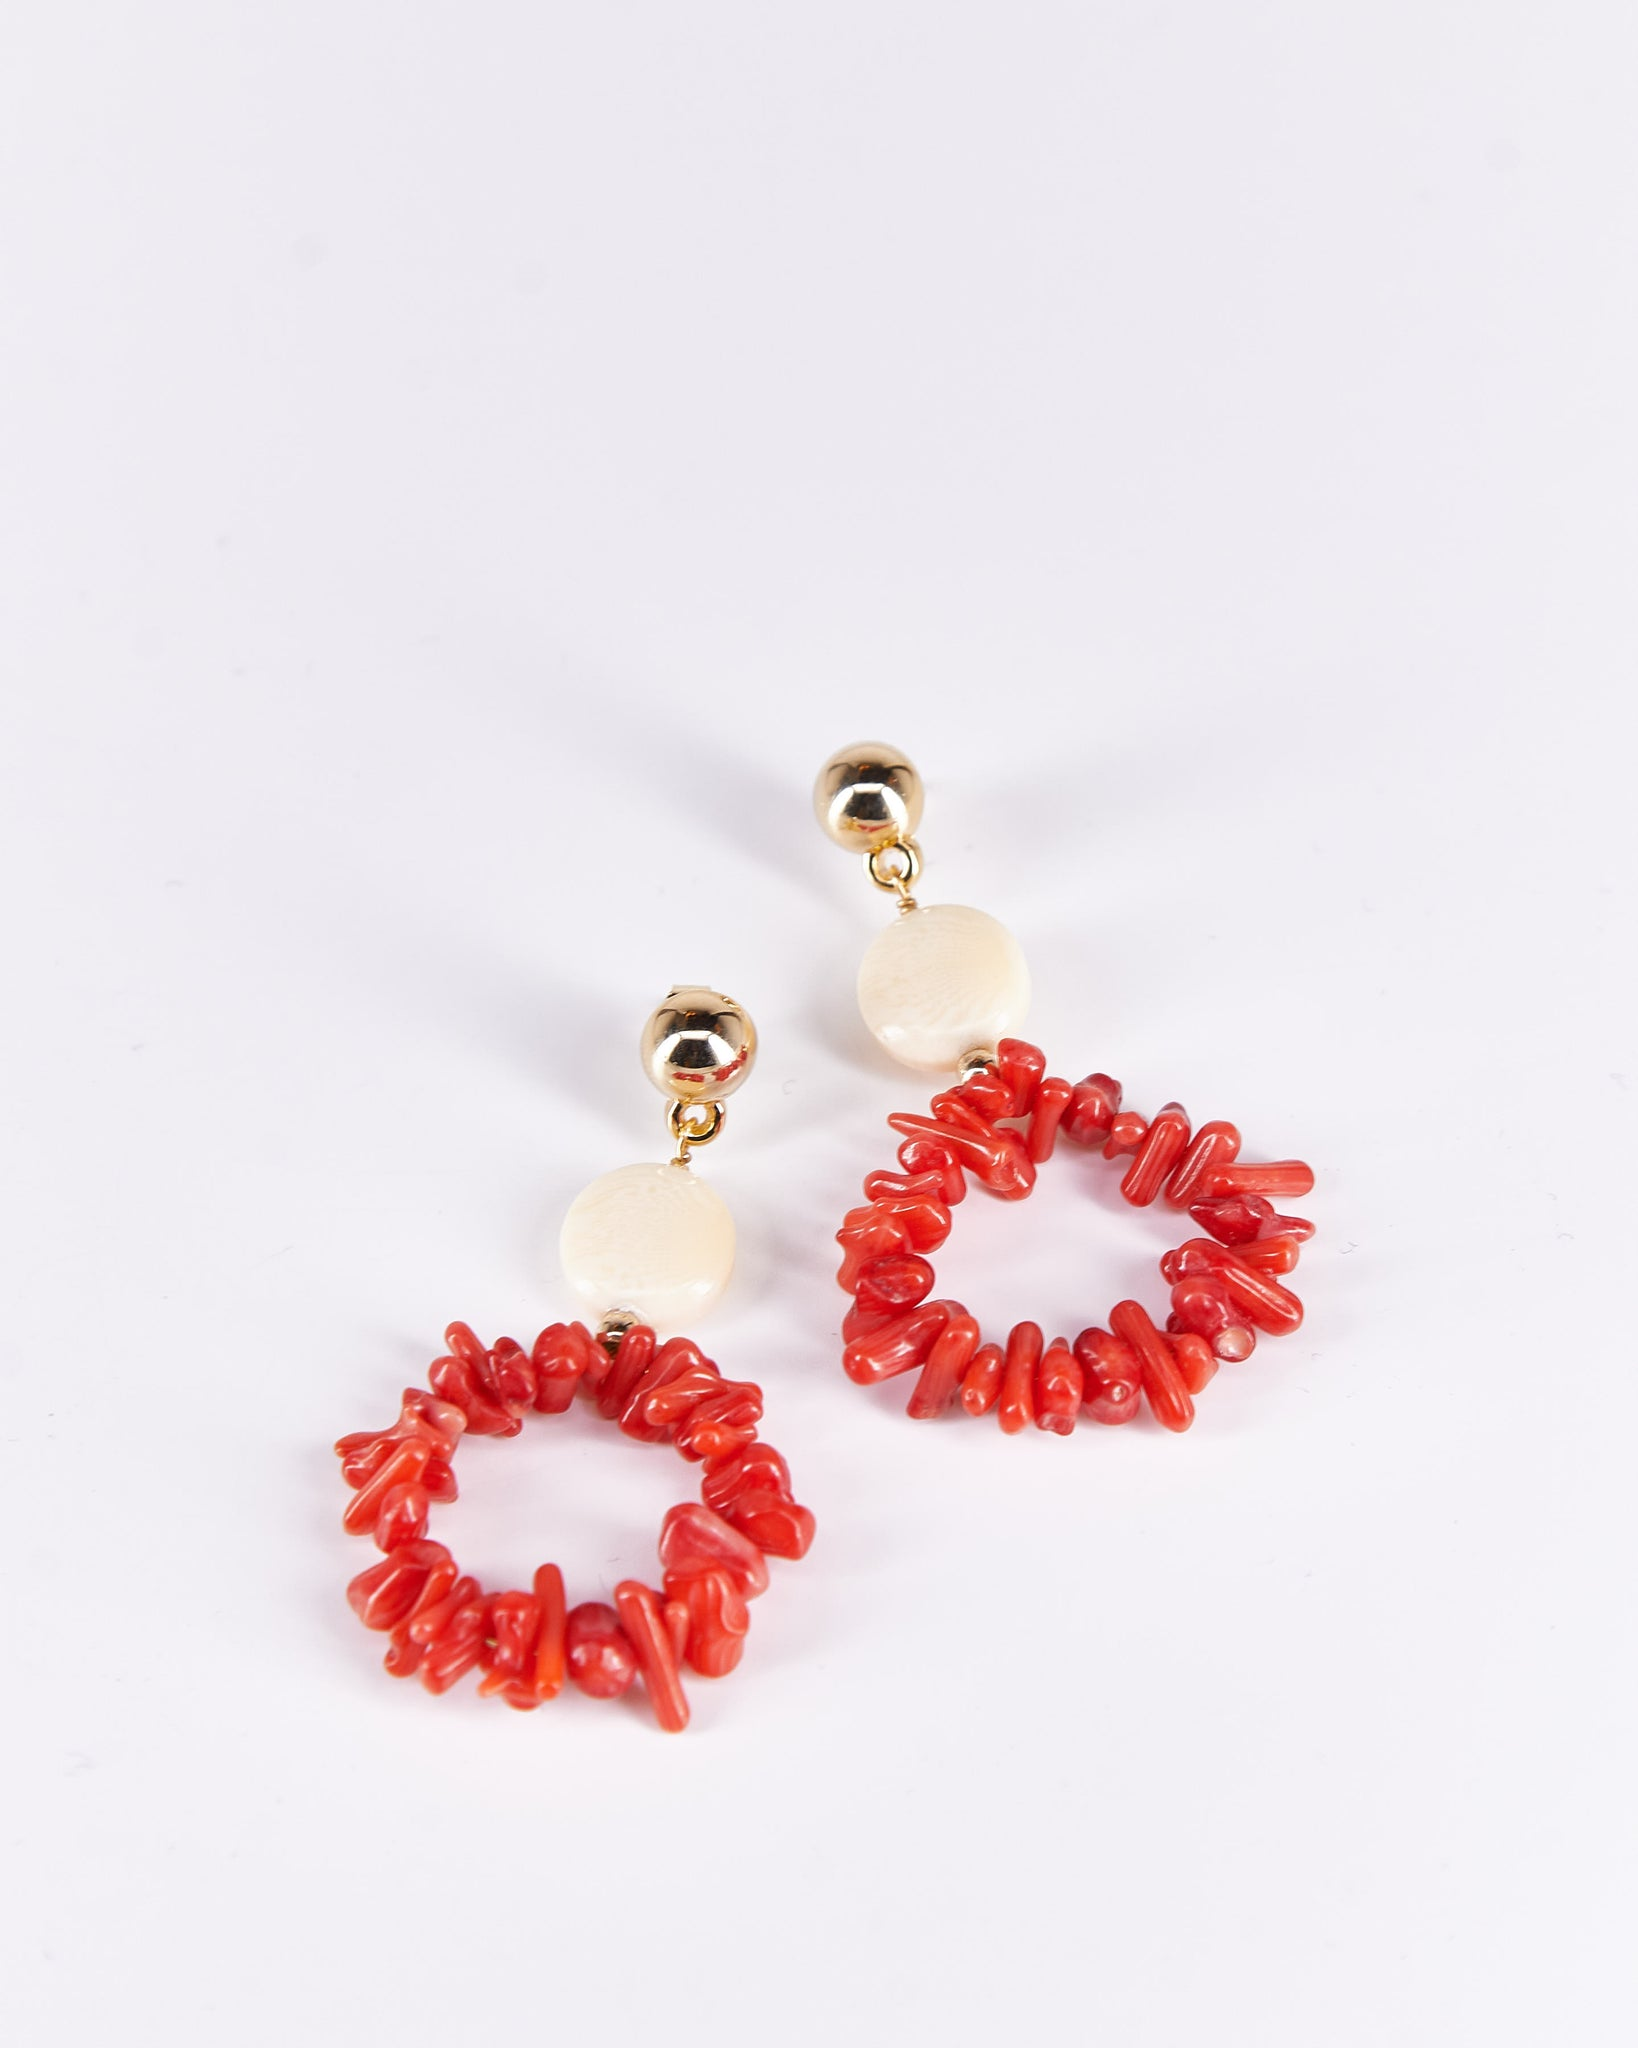 Earrings Sol-Project Bon-Acetate-Handmade-Local Designers-Nuovum-Barcelona